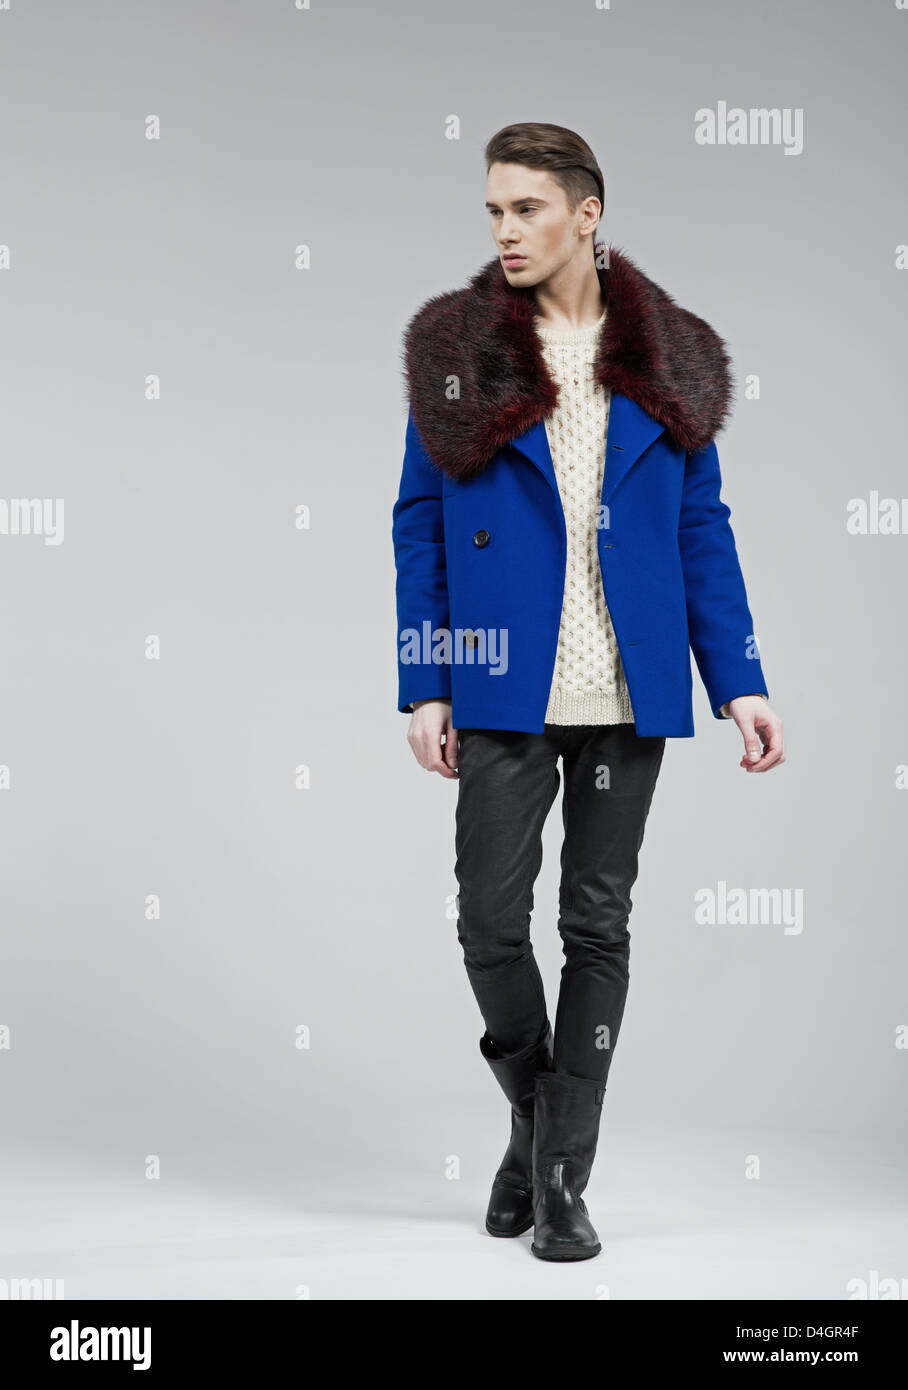 Handsome stylish man dressed in blue coat - Stock Image